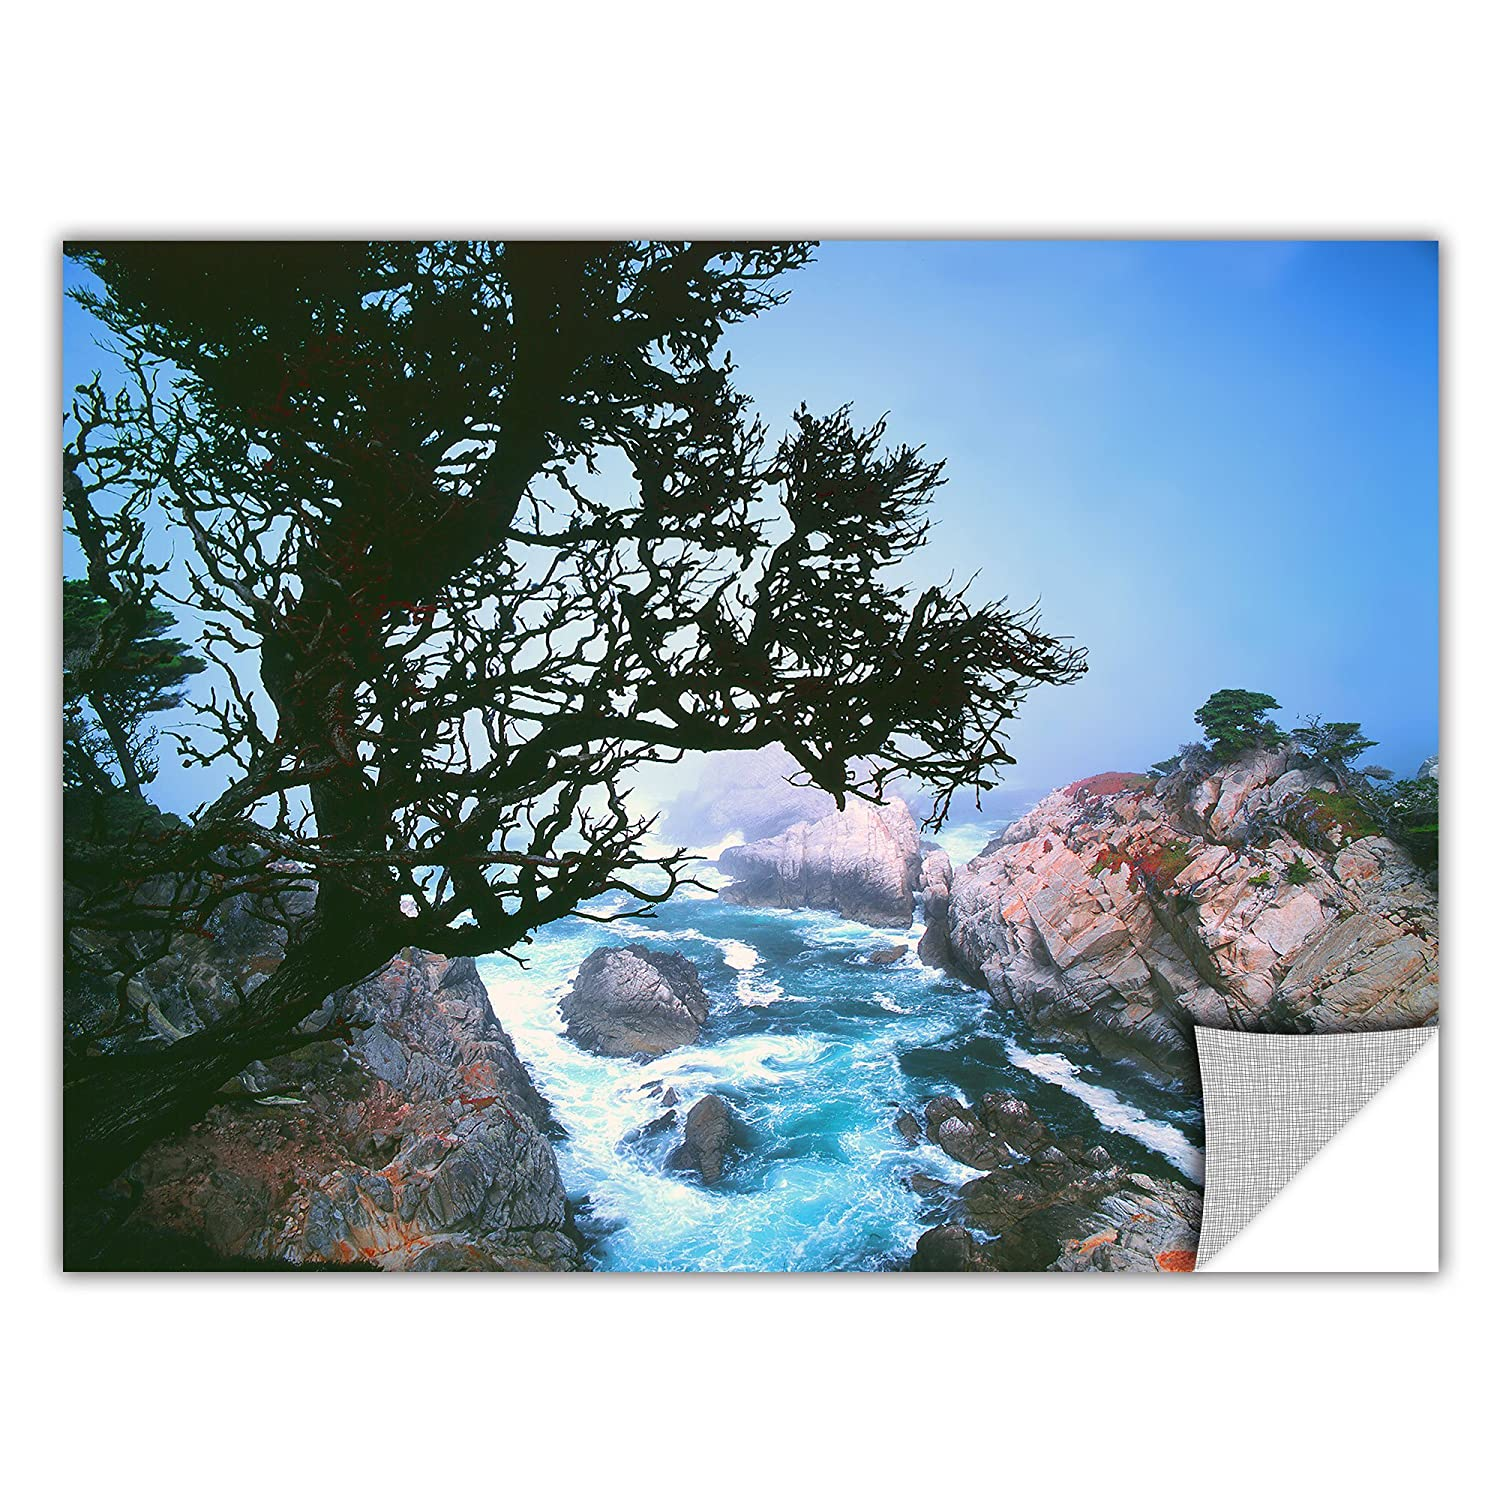 ArtWall ArtApeelz Lifting Fog at Cypress Point Removable Graphic Wall Art by Dean Uhlinger 14 by 18-Inch